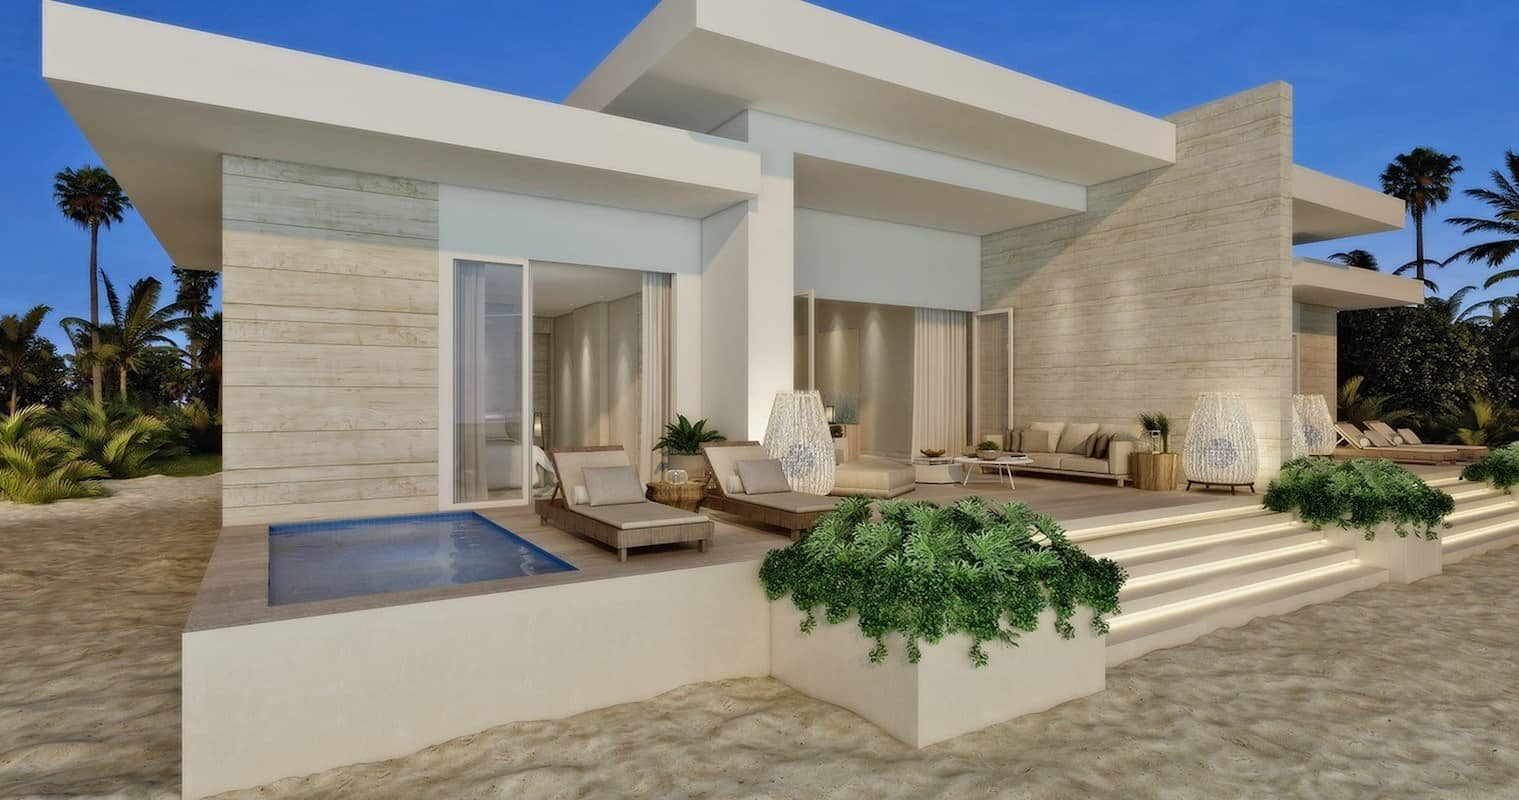 Alaia Belize reveals its Residential Luxury Beach Villas along the Caribbean Sea